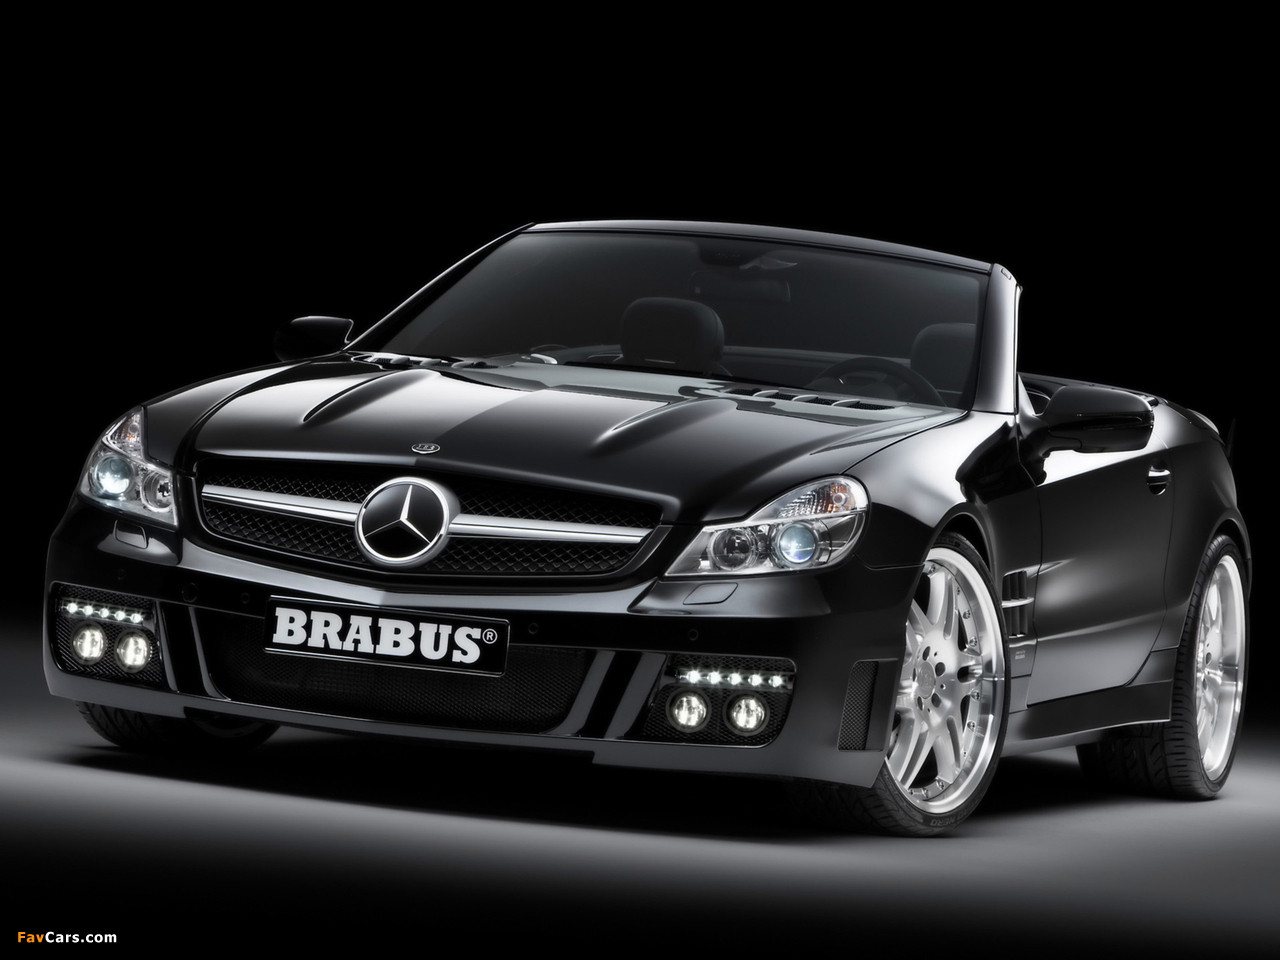 Brabus S V12 S (R230) 2008 wallpapers (1280 x 960)